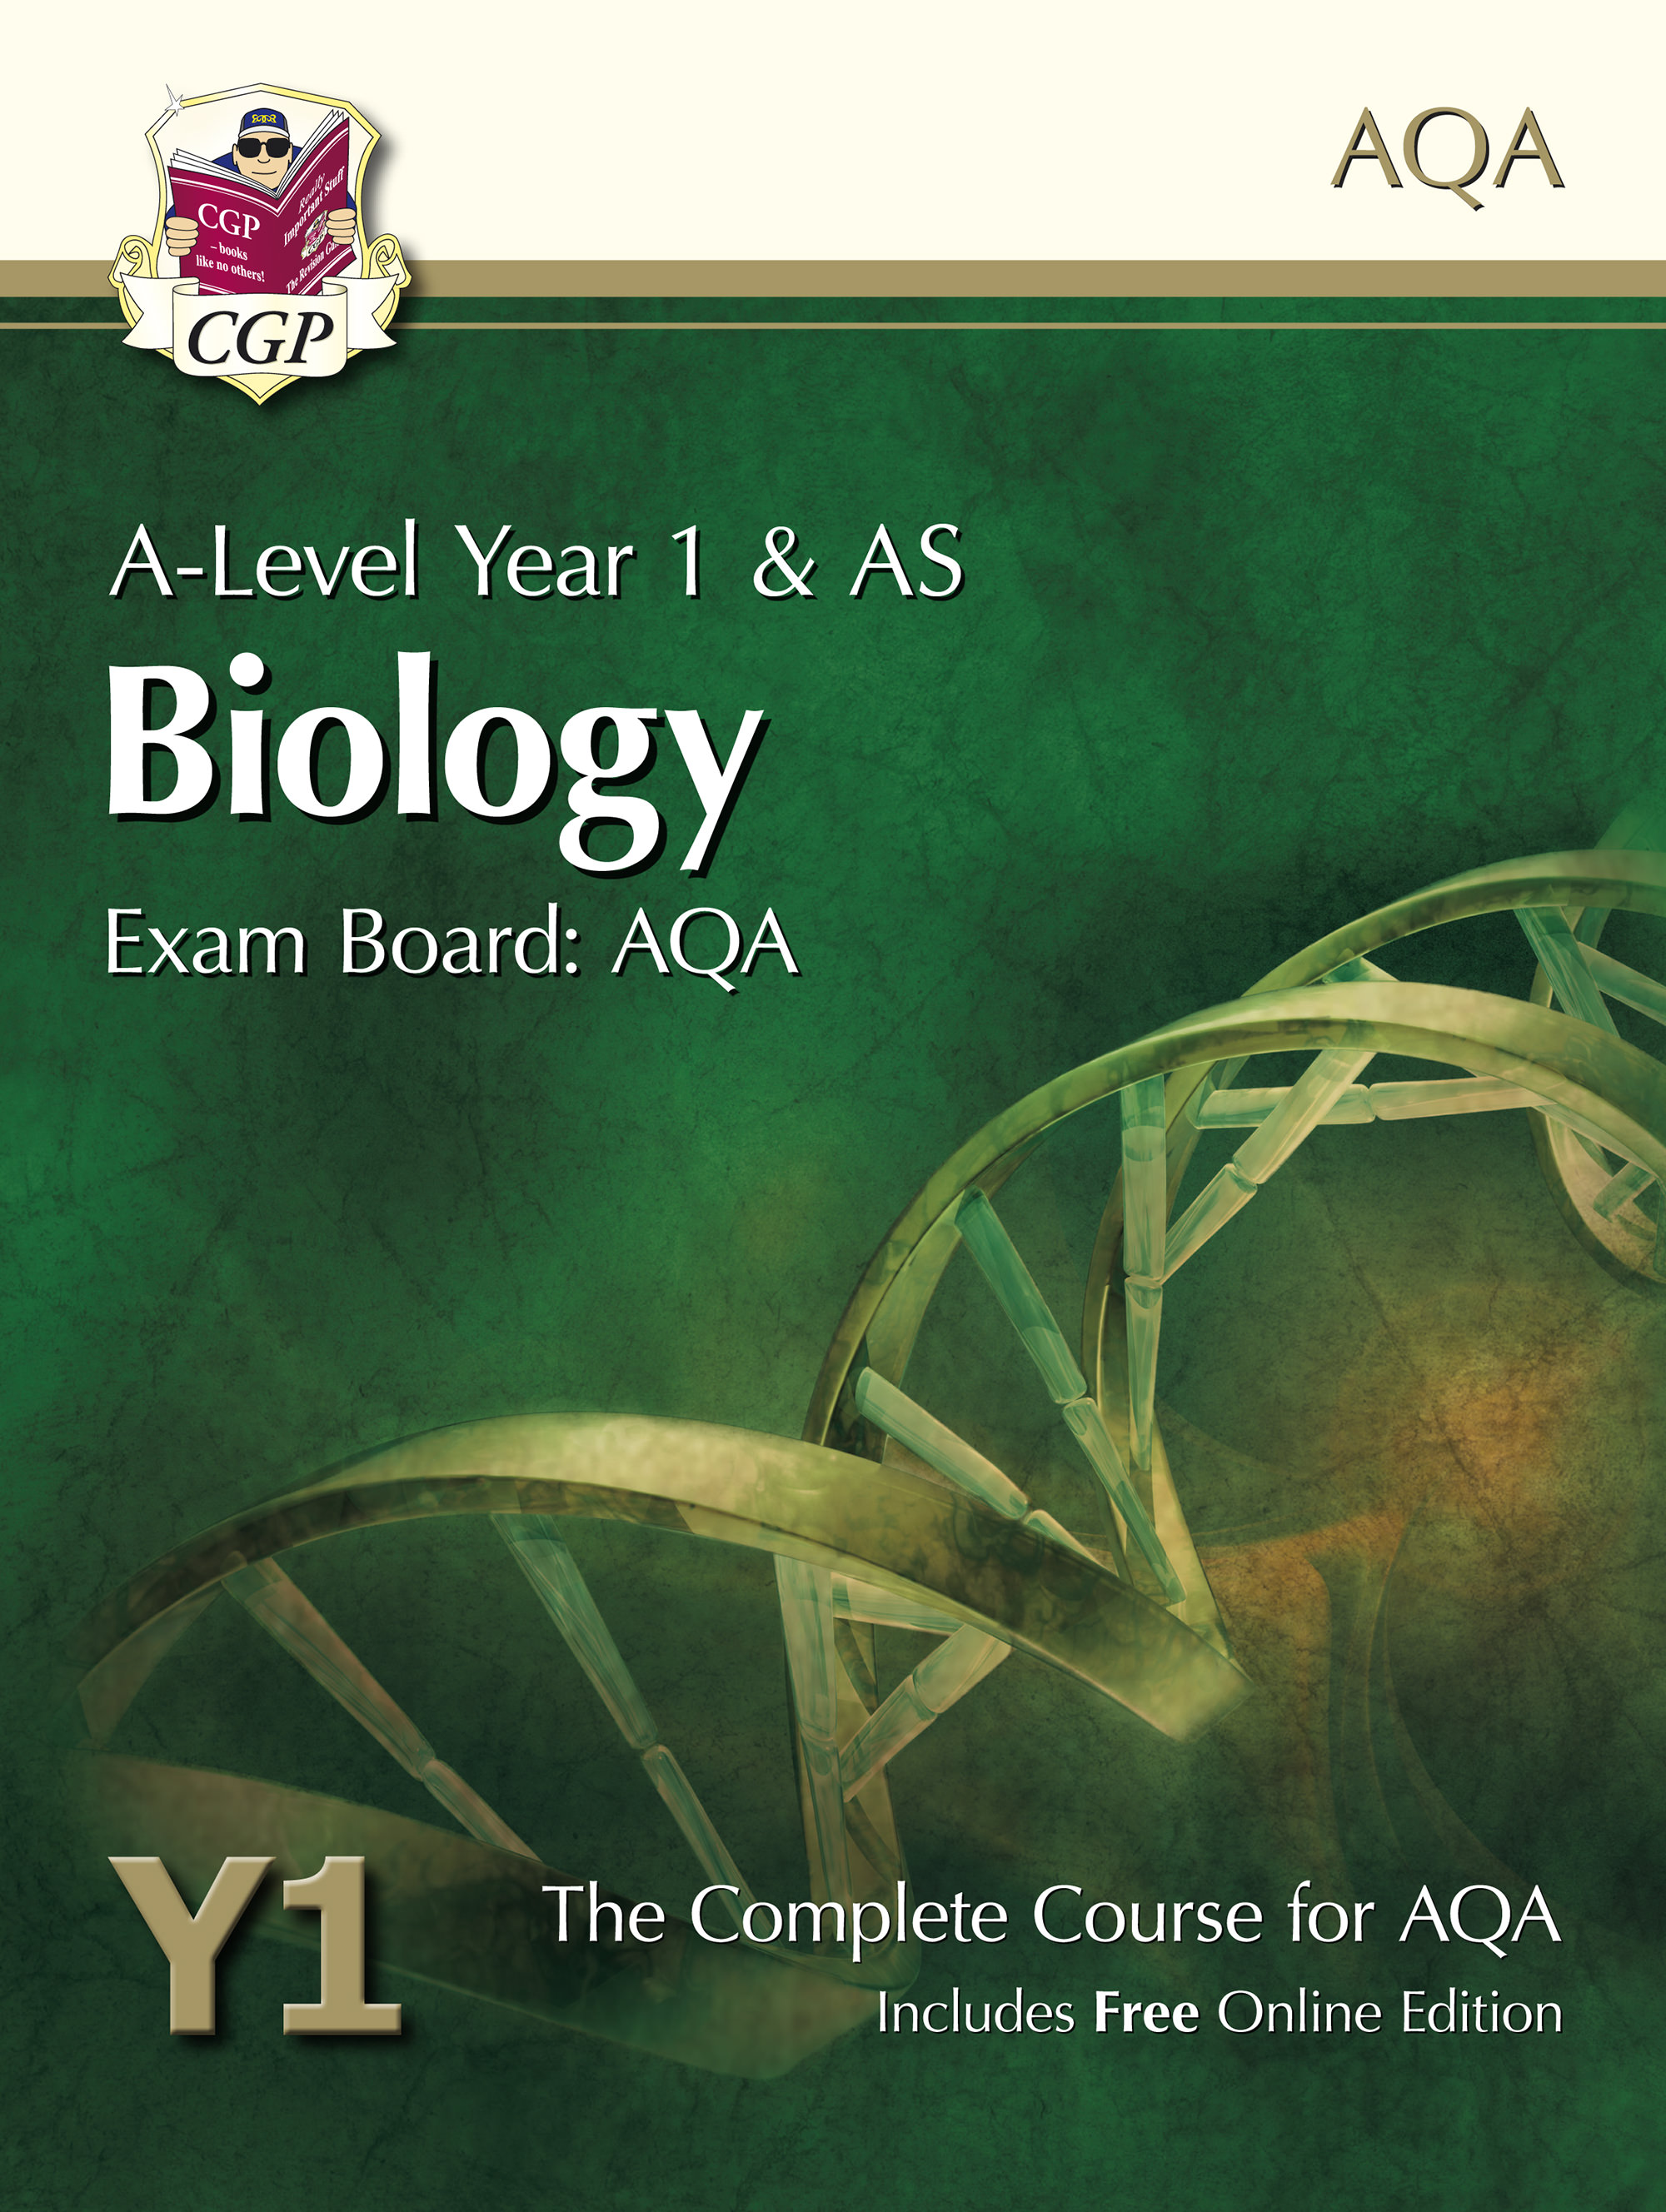 BATB52 - A-Level Biology for AQA: Year 1 & AS Student Book with Online Edition